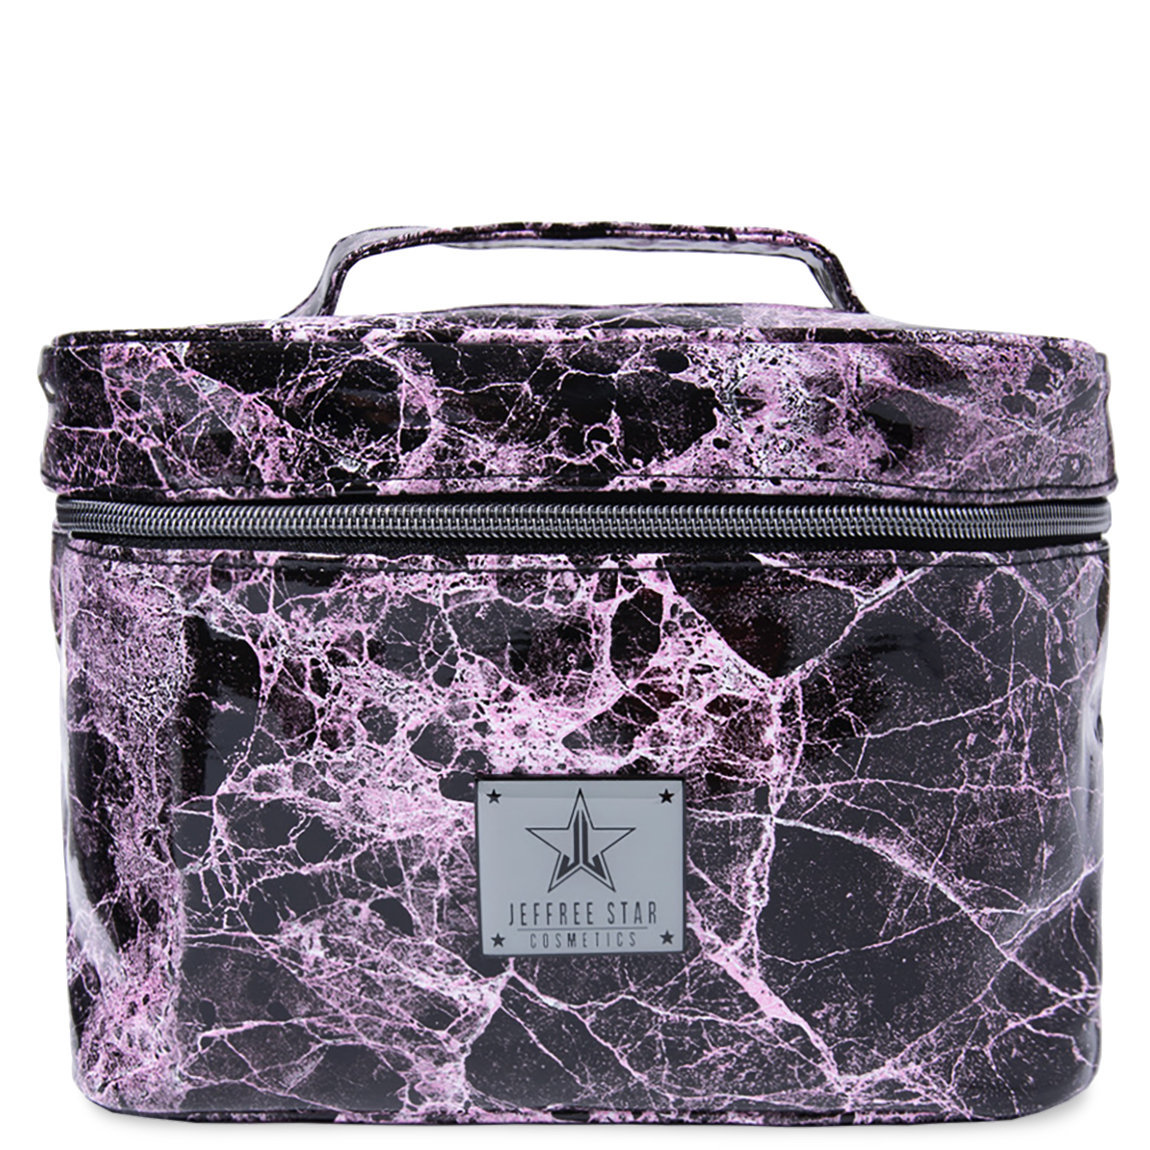 Jeffree Star Cosmetics Travel Makeup Bag Pink Marble alternative view 1 - product swatch.